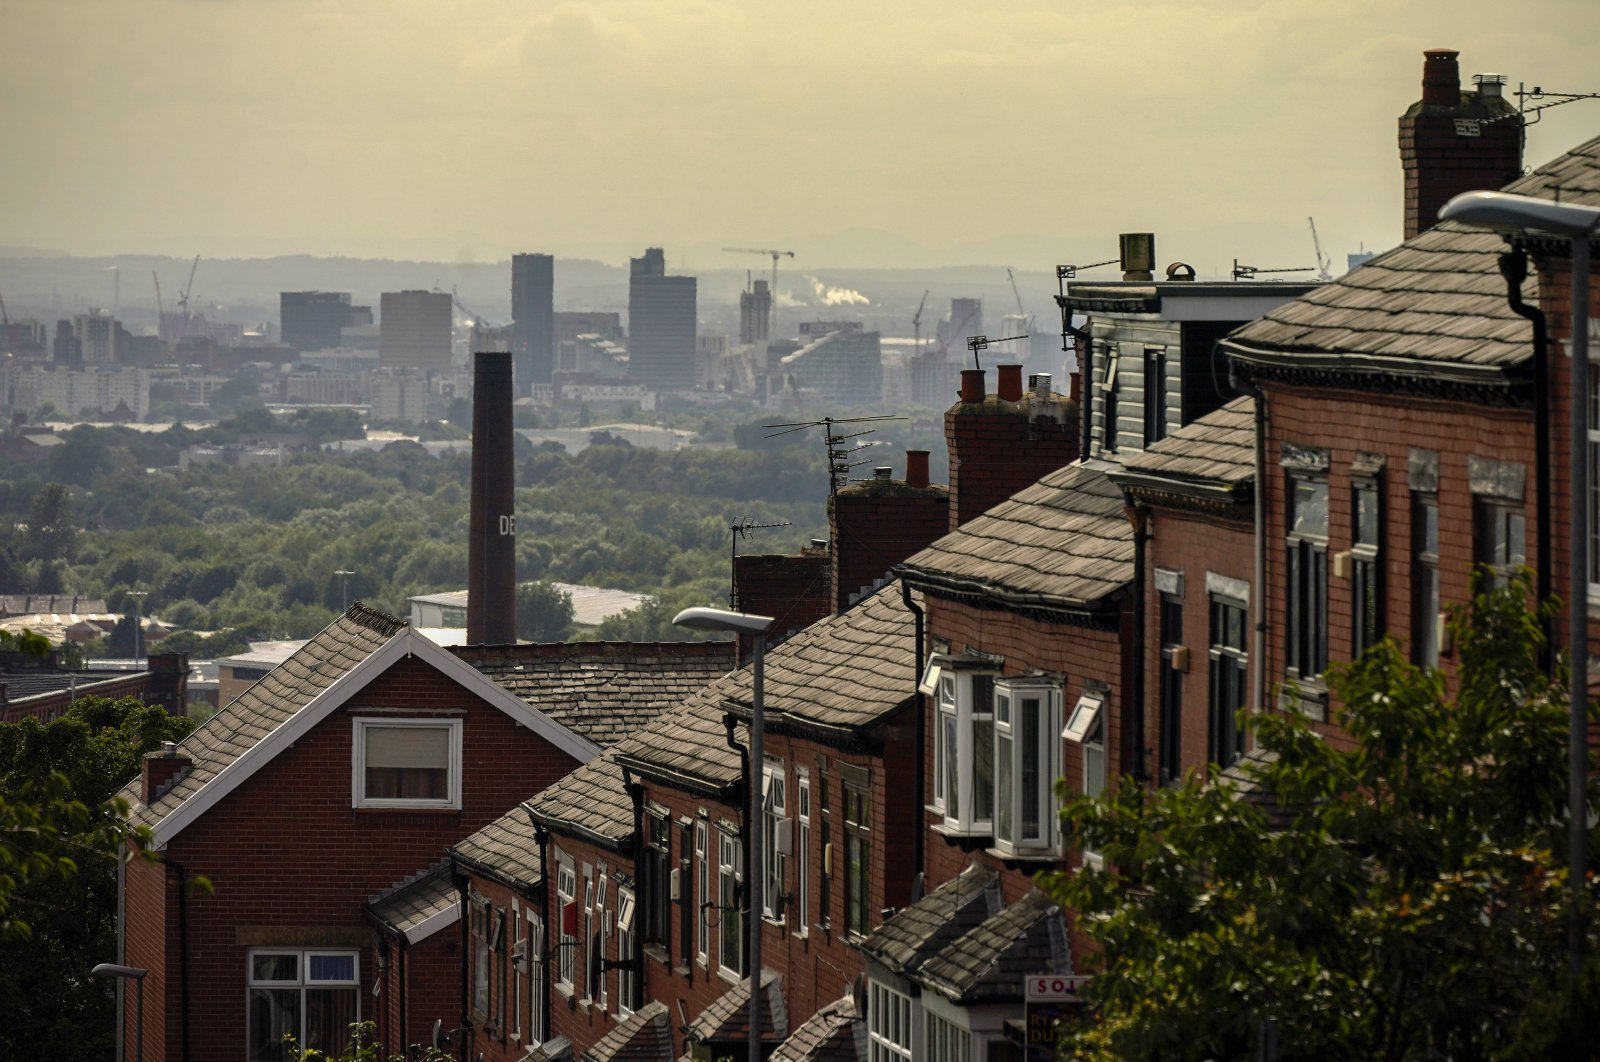 A general view of an old cotton mill in Oldham with the city of Manchester on the horizon, in Oldham, England, July 29, 2020. (Getty Images)